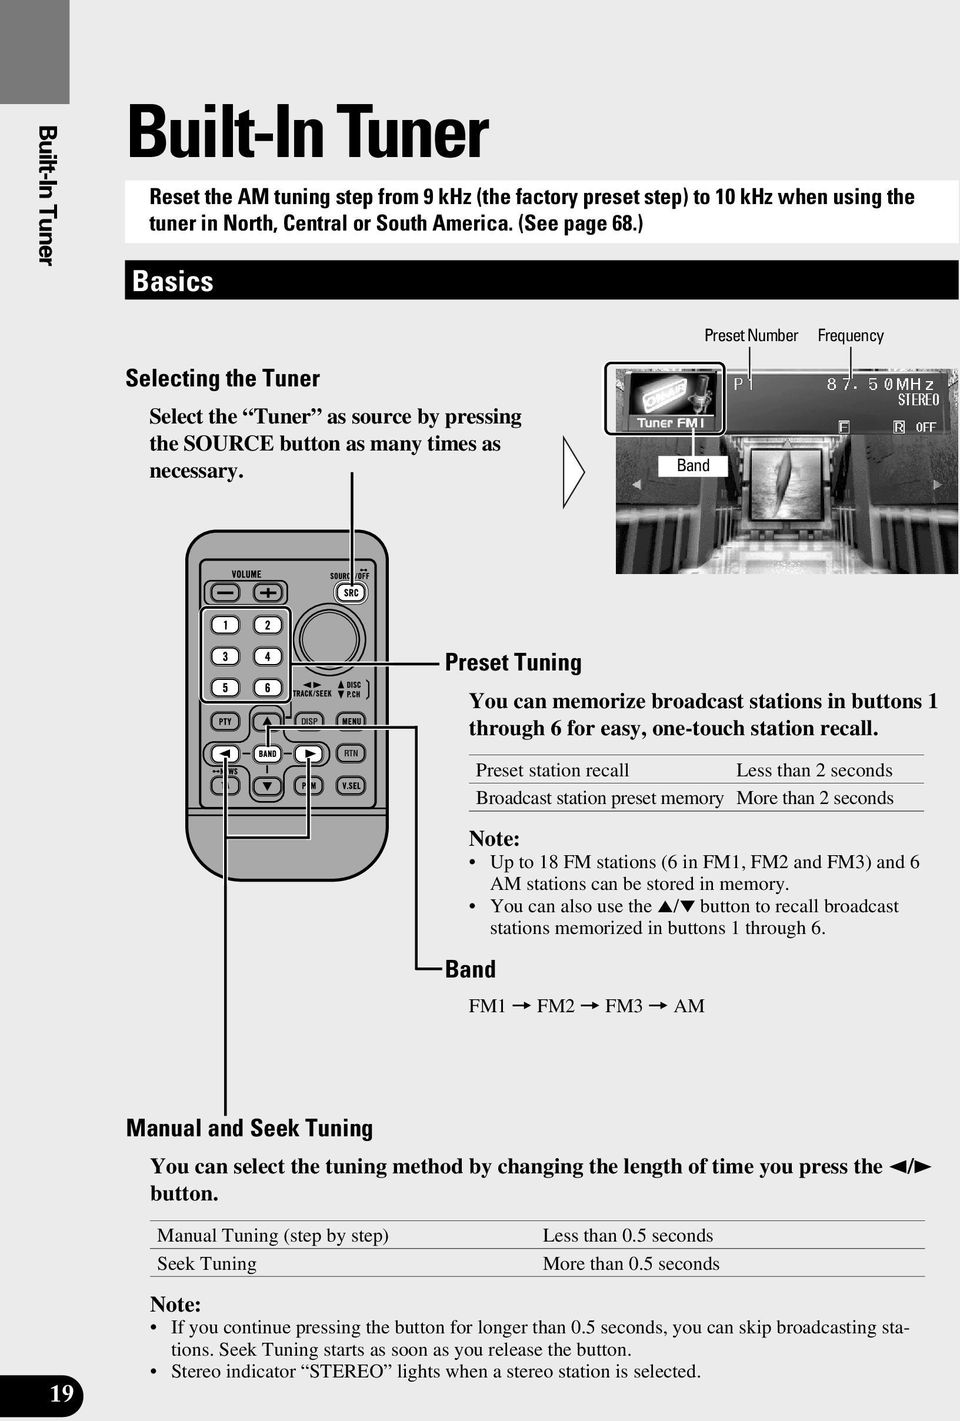 Band Preset Tuning DISP You can memorize broadcast stations in buttons 1 through 6 for easy, one-touch station recall.